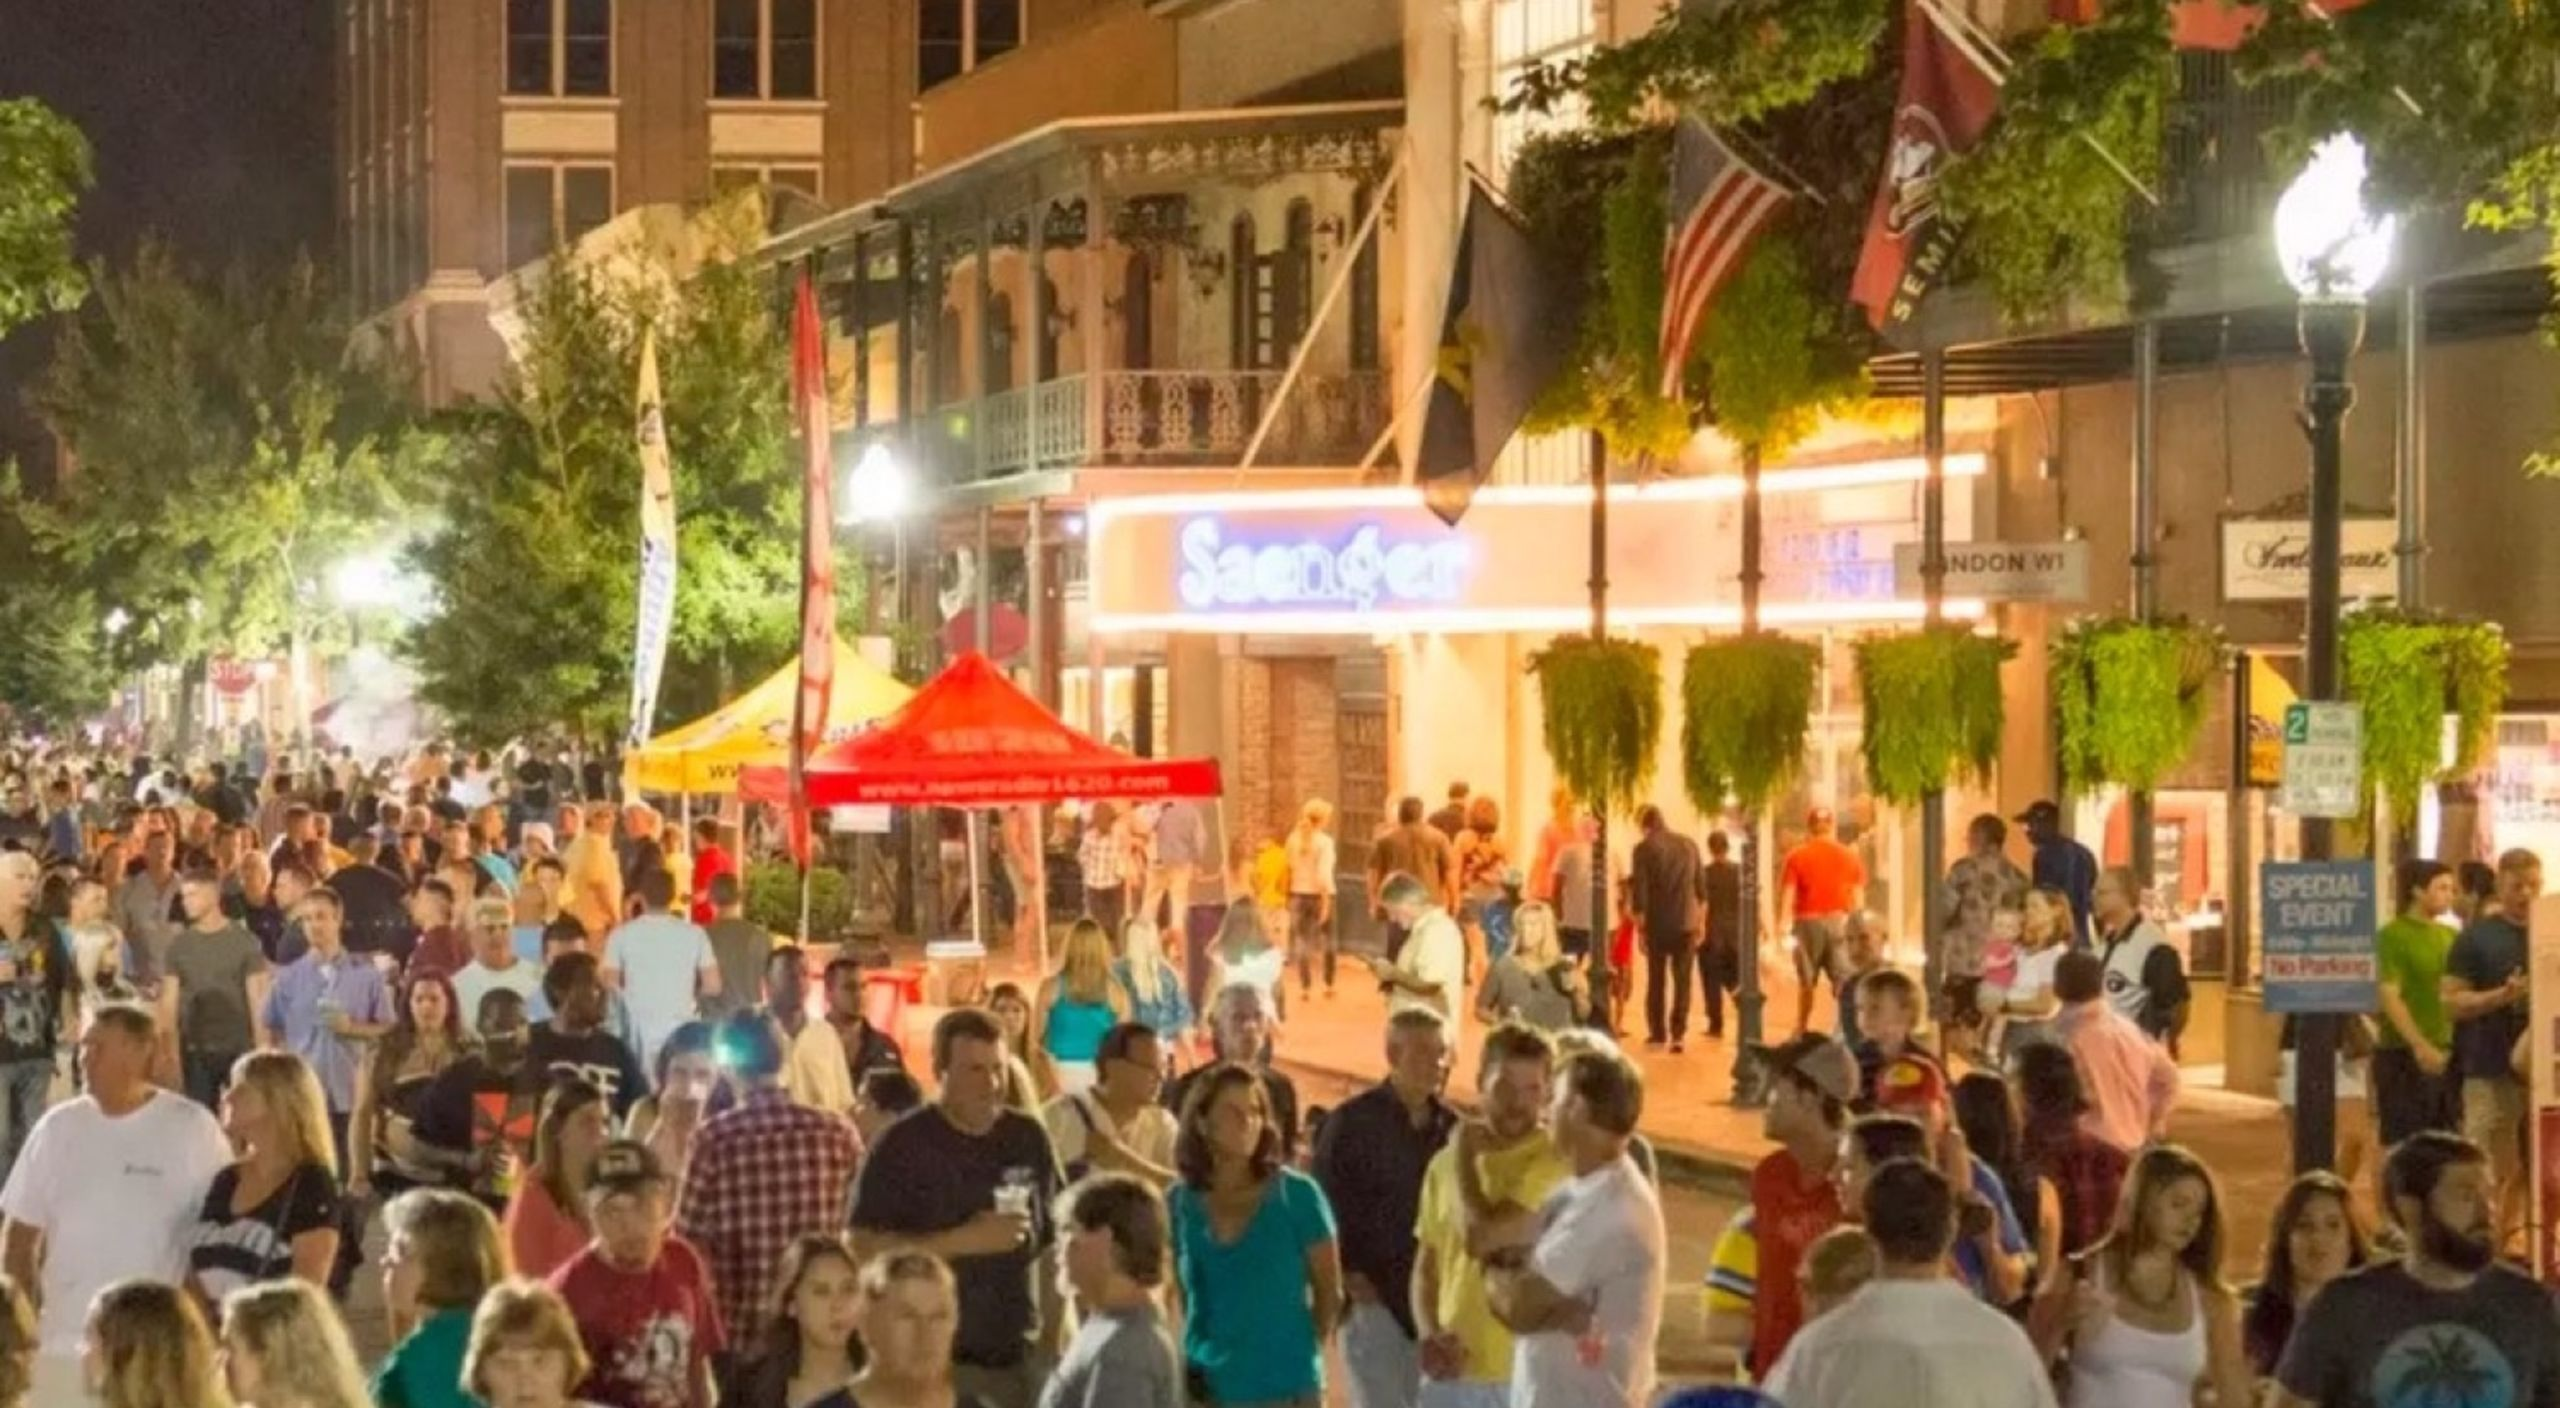 enjoy gallery night in downtown pensacola